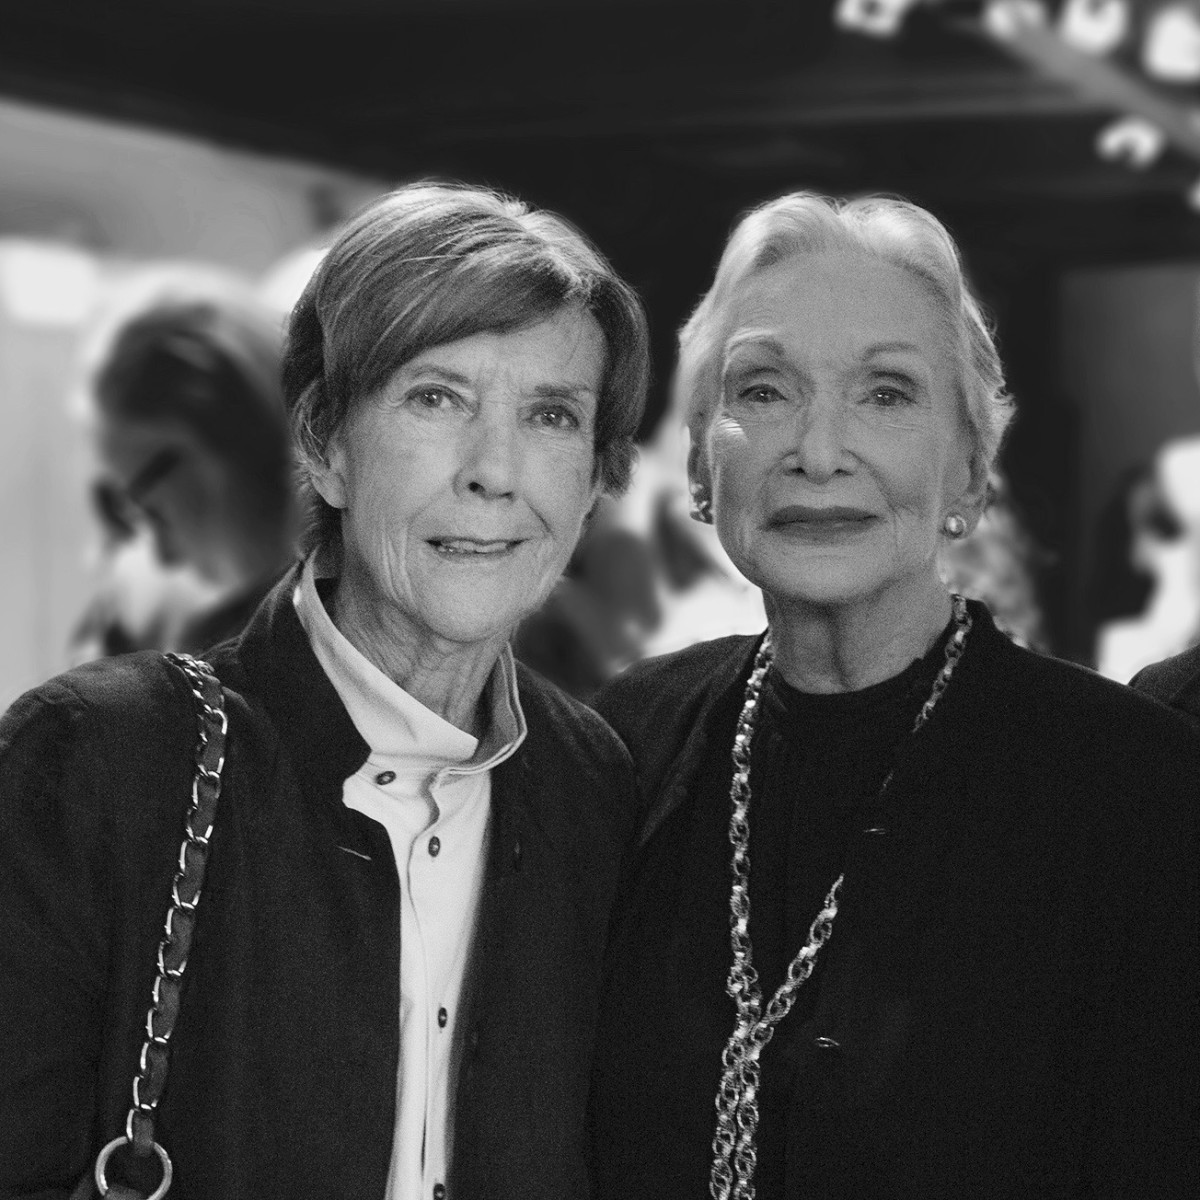 K N Drop In Filter Evox Ra: Pin Drop: Short Stories With Siân Phillips And Eileen